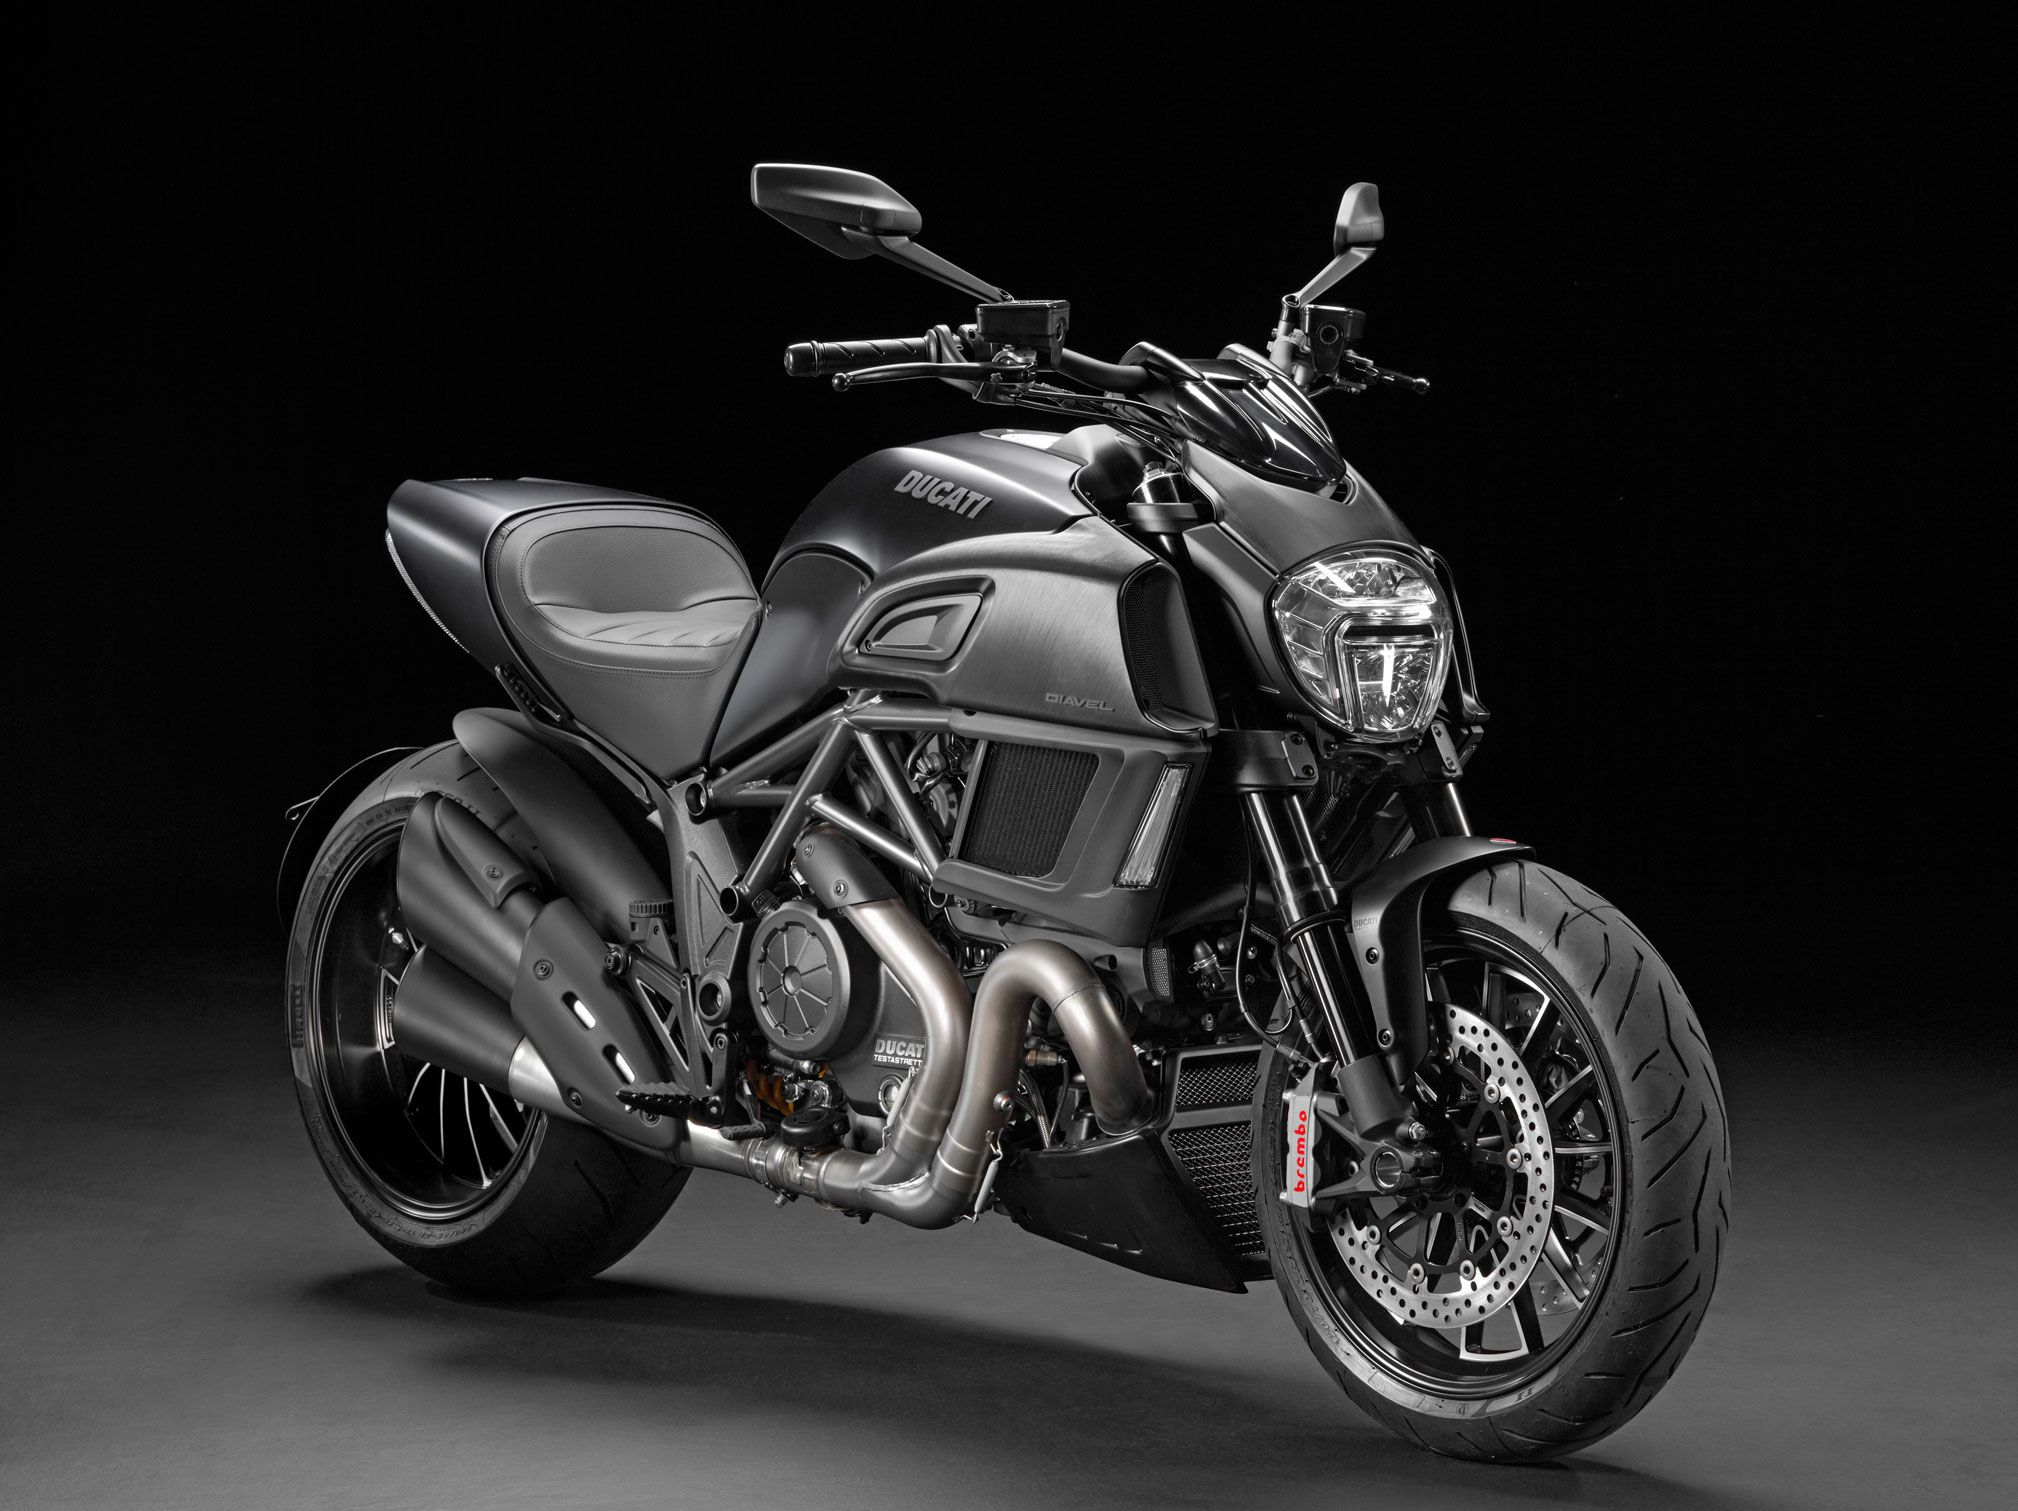 2018 Ducati Diavel Review Make A Bold Statement 2018 Ducati Diavel